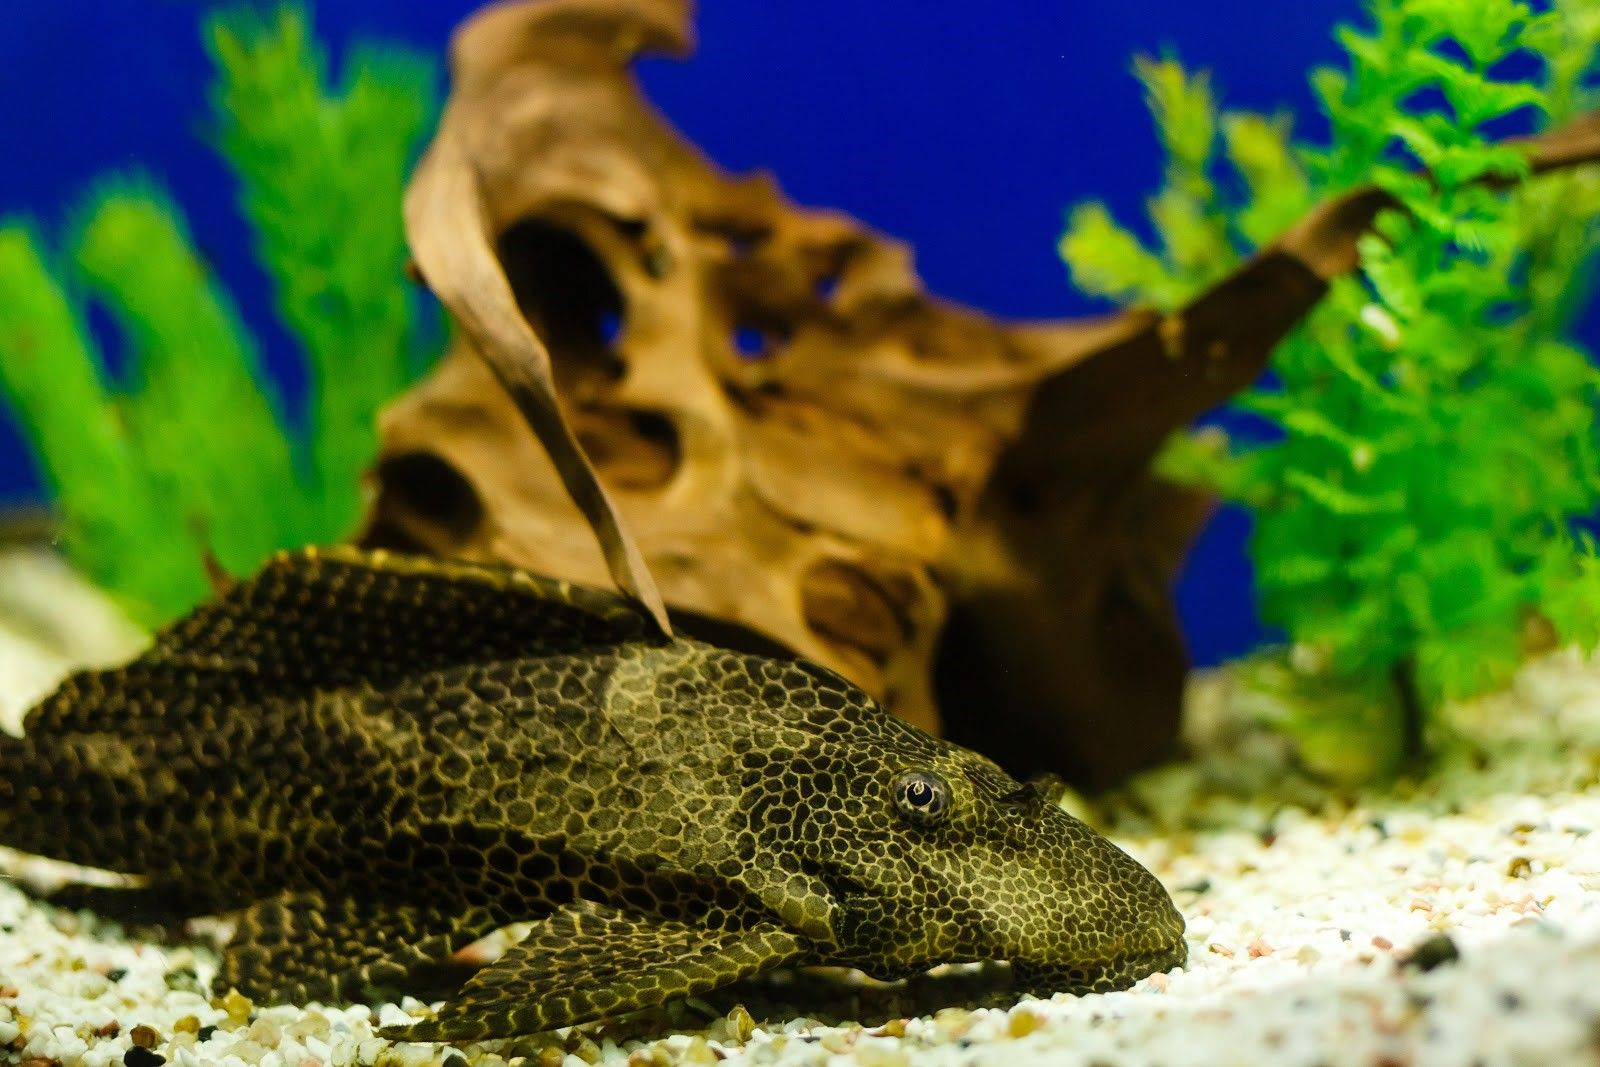 Common Pleco close up in small aquarium